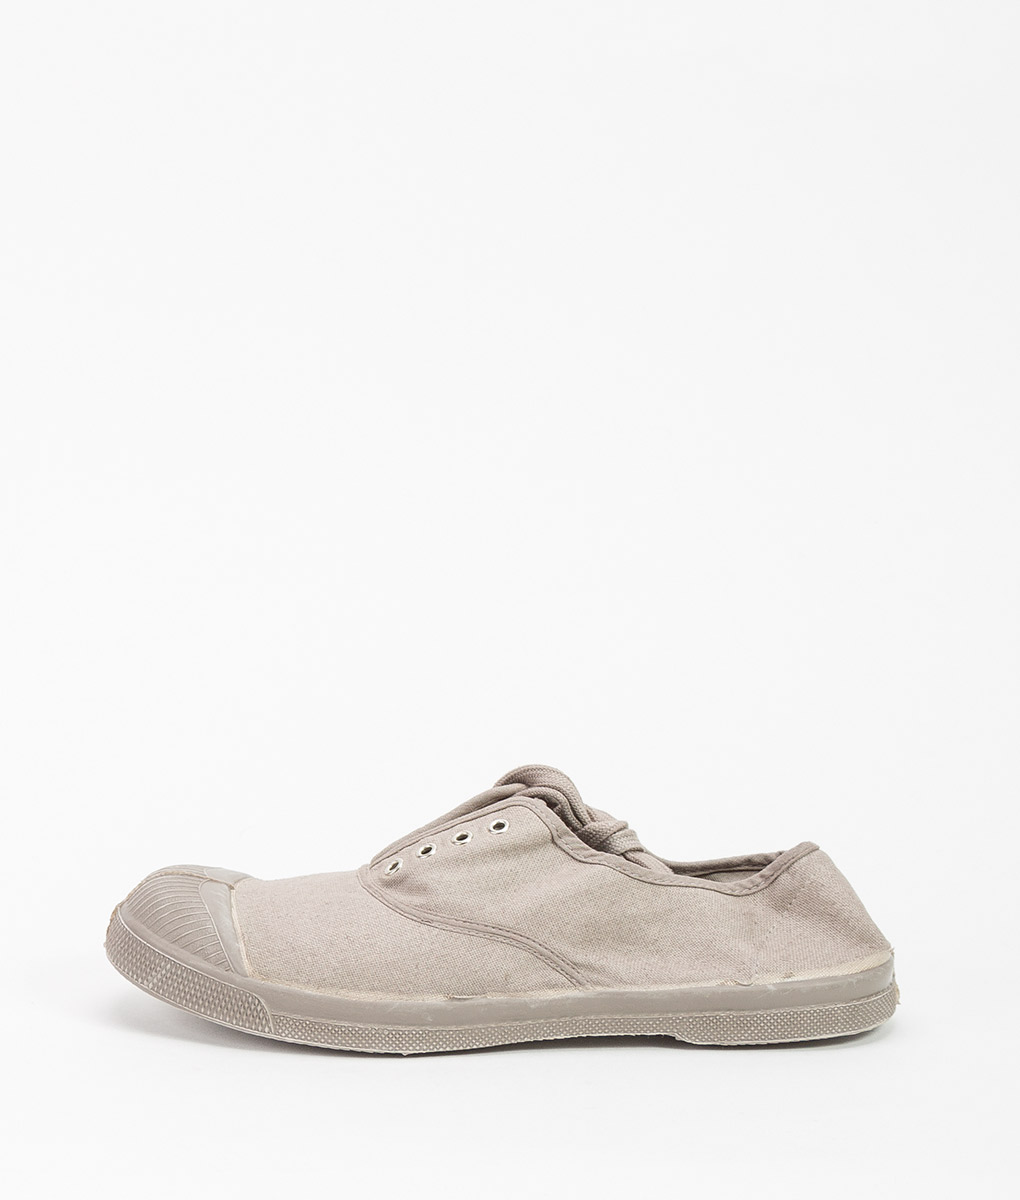 BENSIMON Women Sneakers 0805 COLORSOLE Pearl Grey 44.99 1